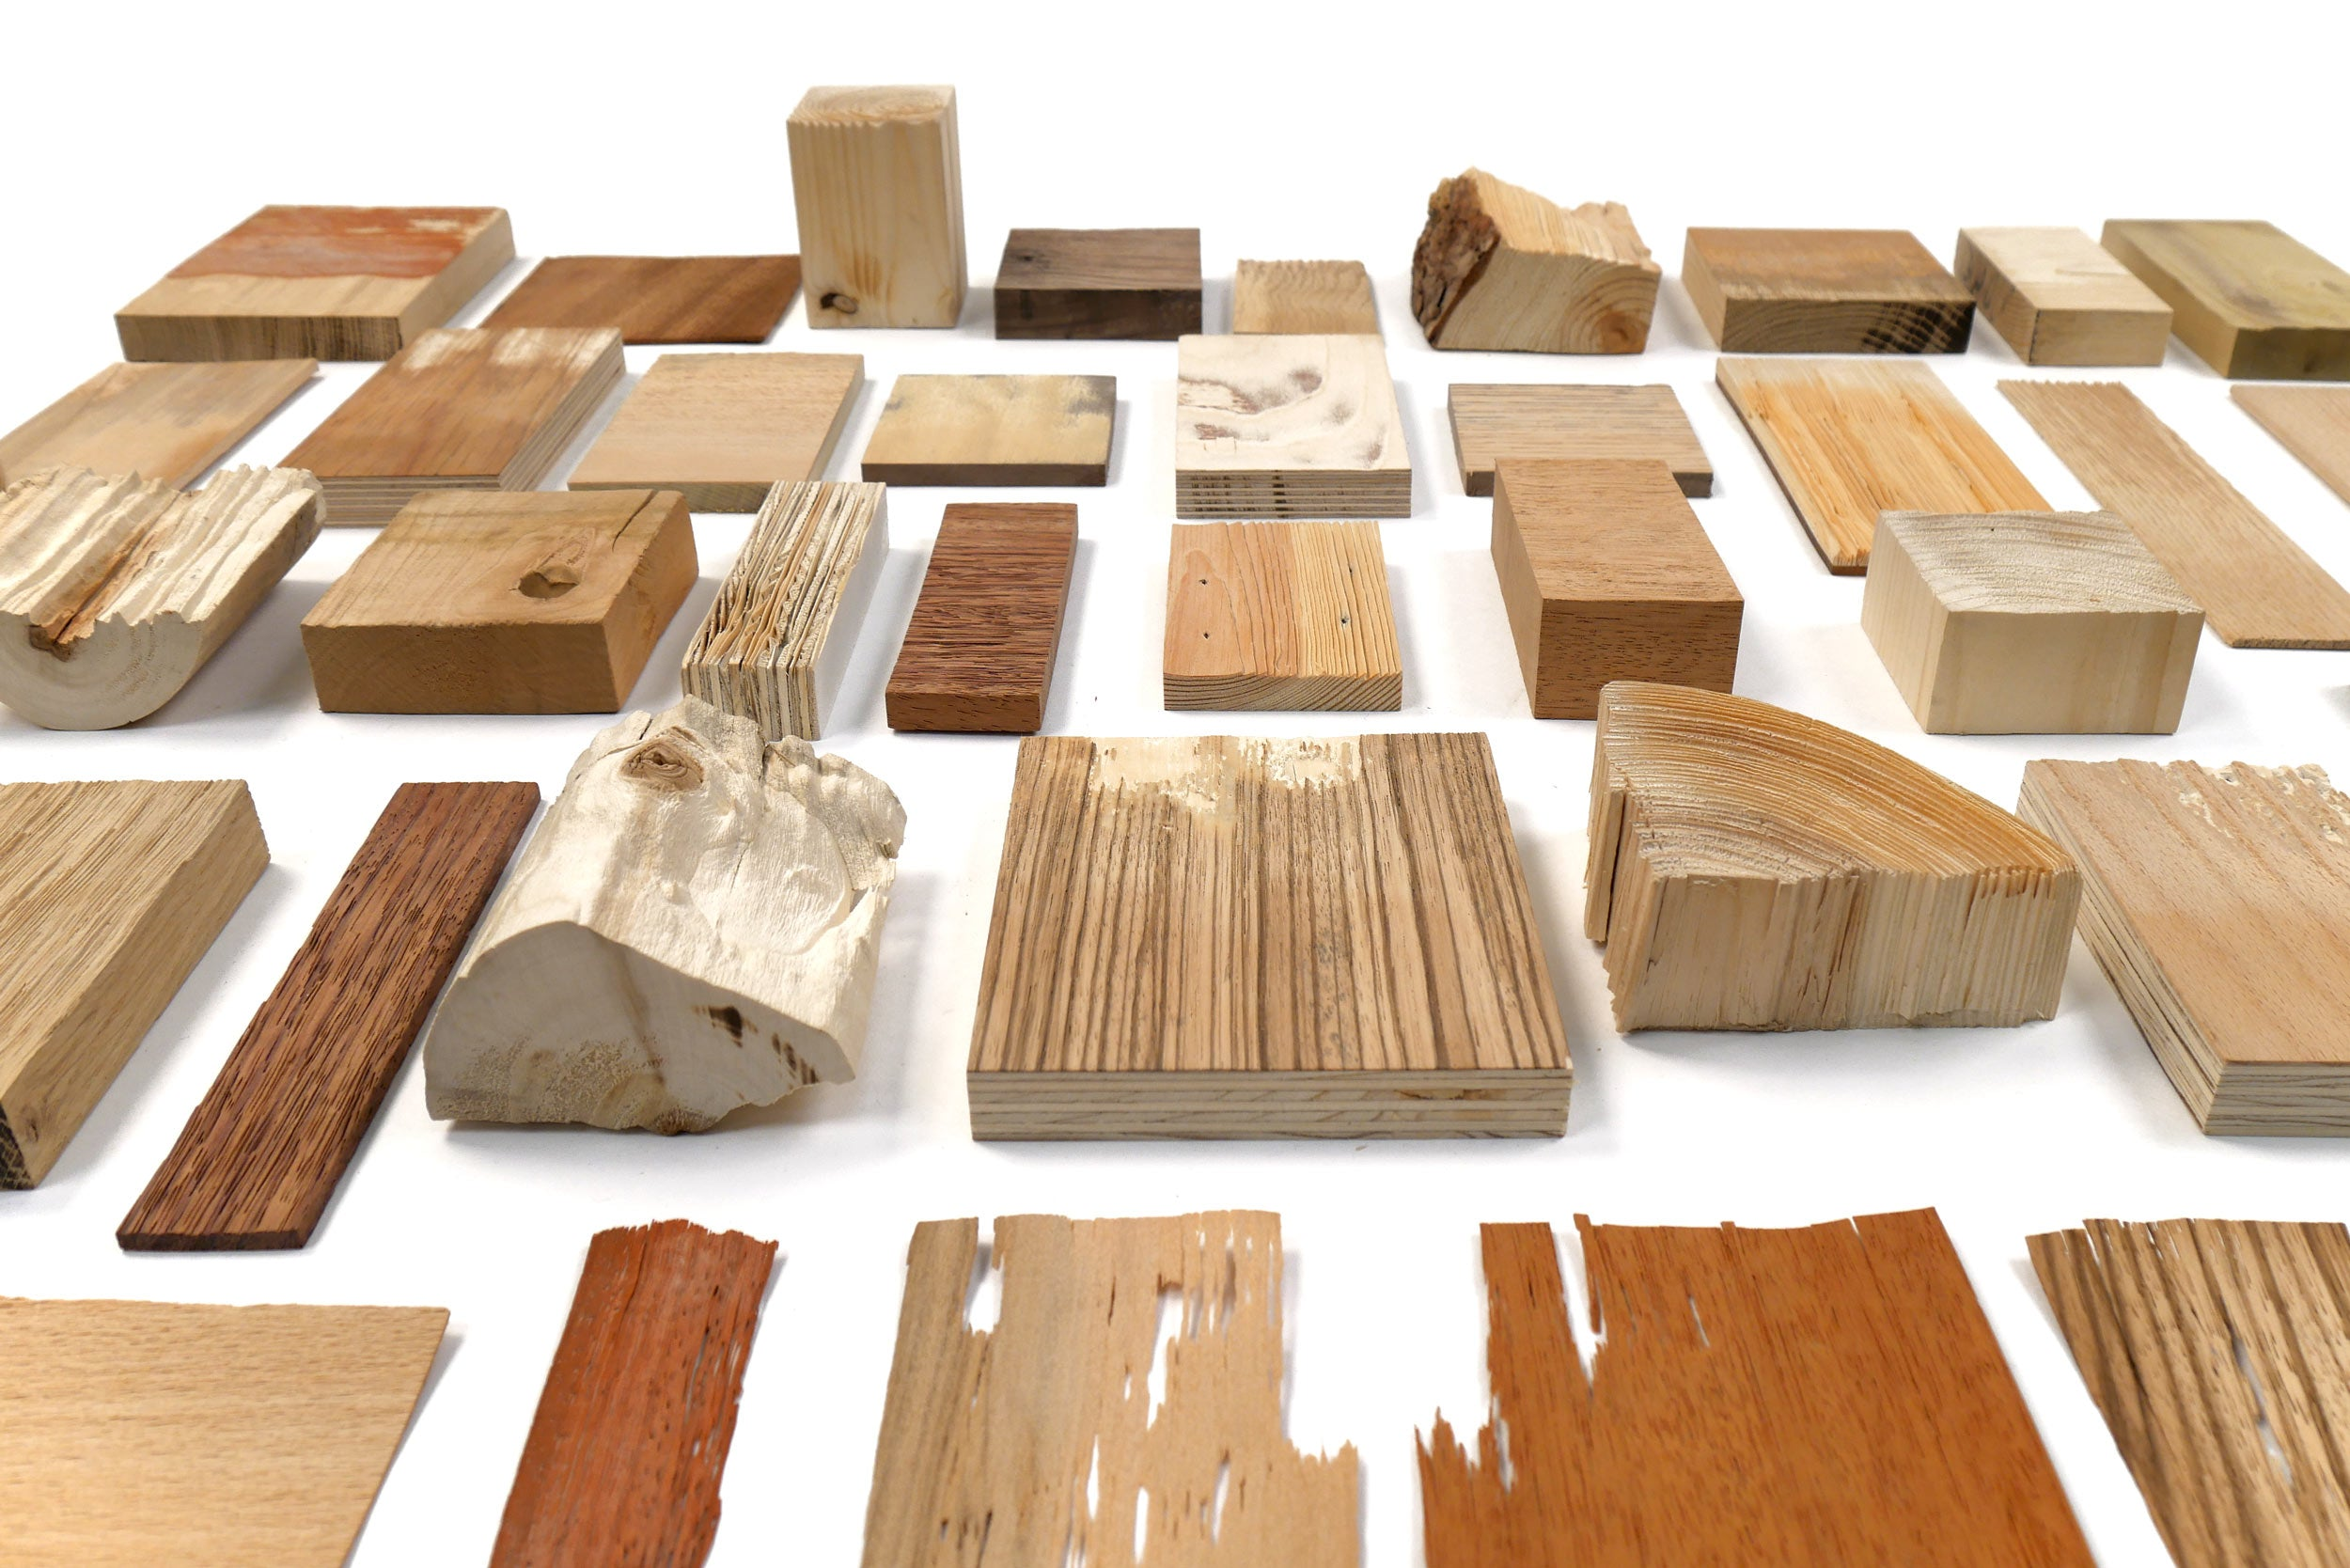 Different pieces of wood